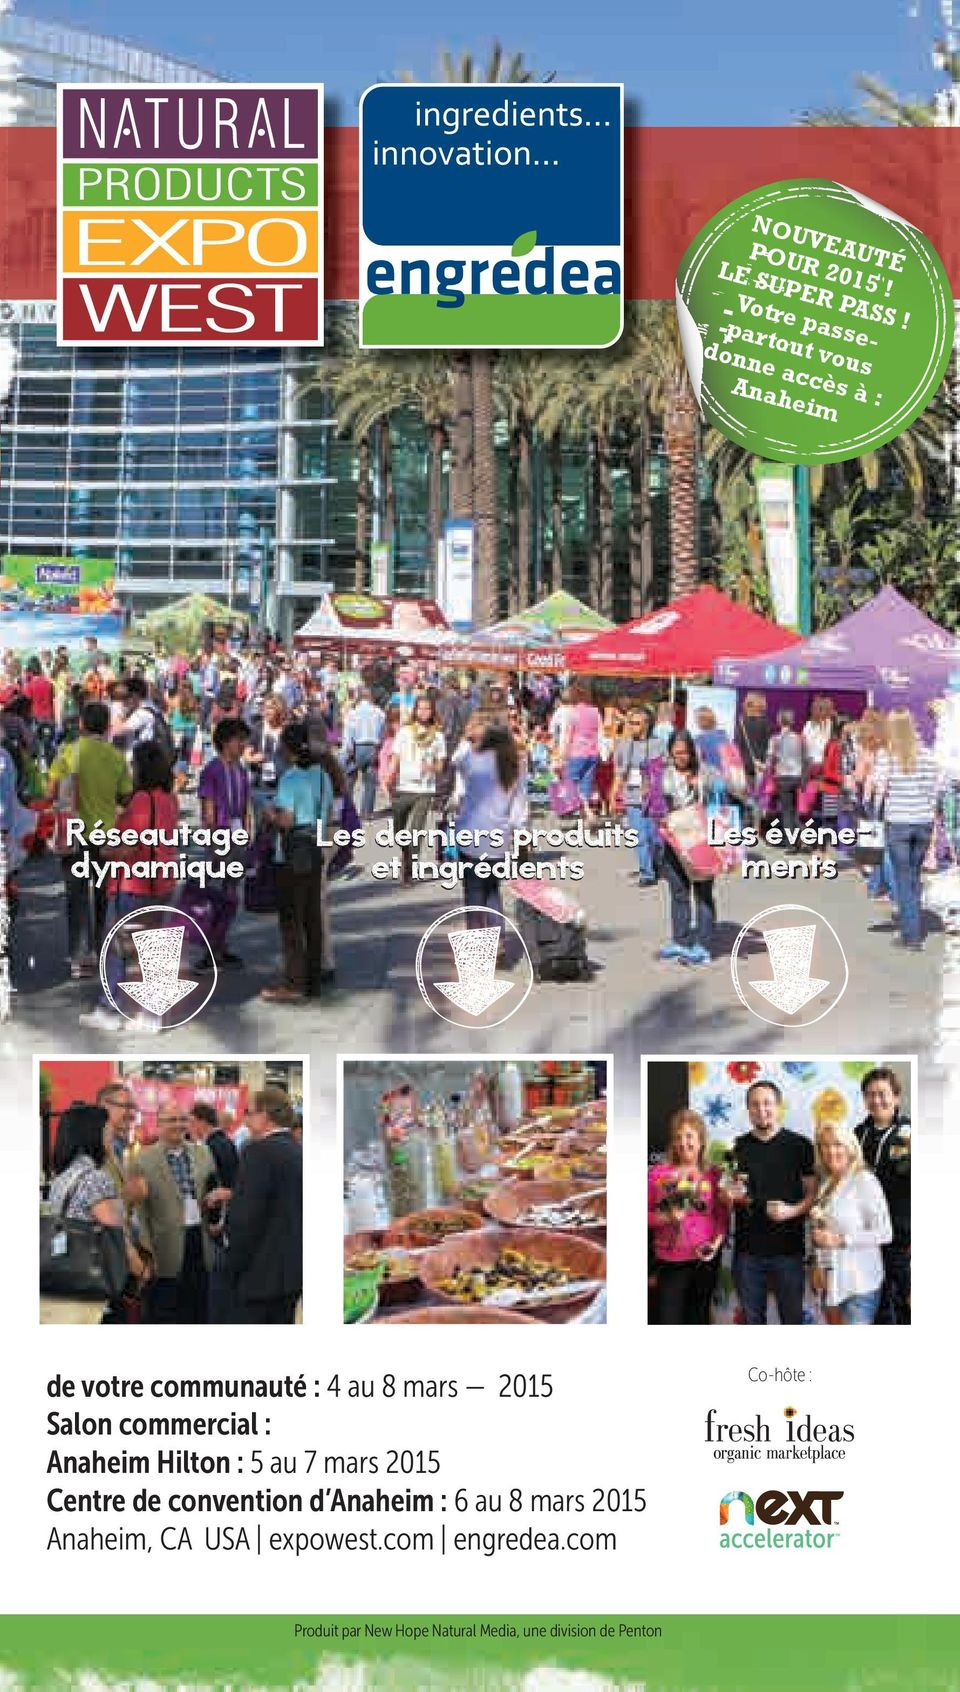 communauté : 4 au 8 mars 2015 Salon commercial : Anaheim Hilton : 5 au 7 mars 2015 Centre de convention d